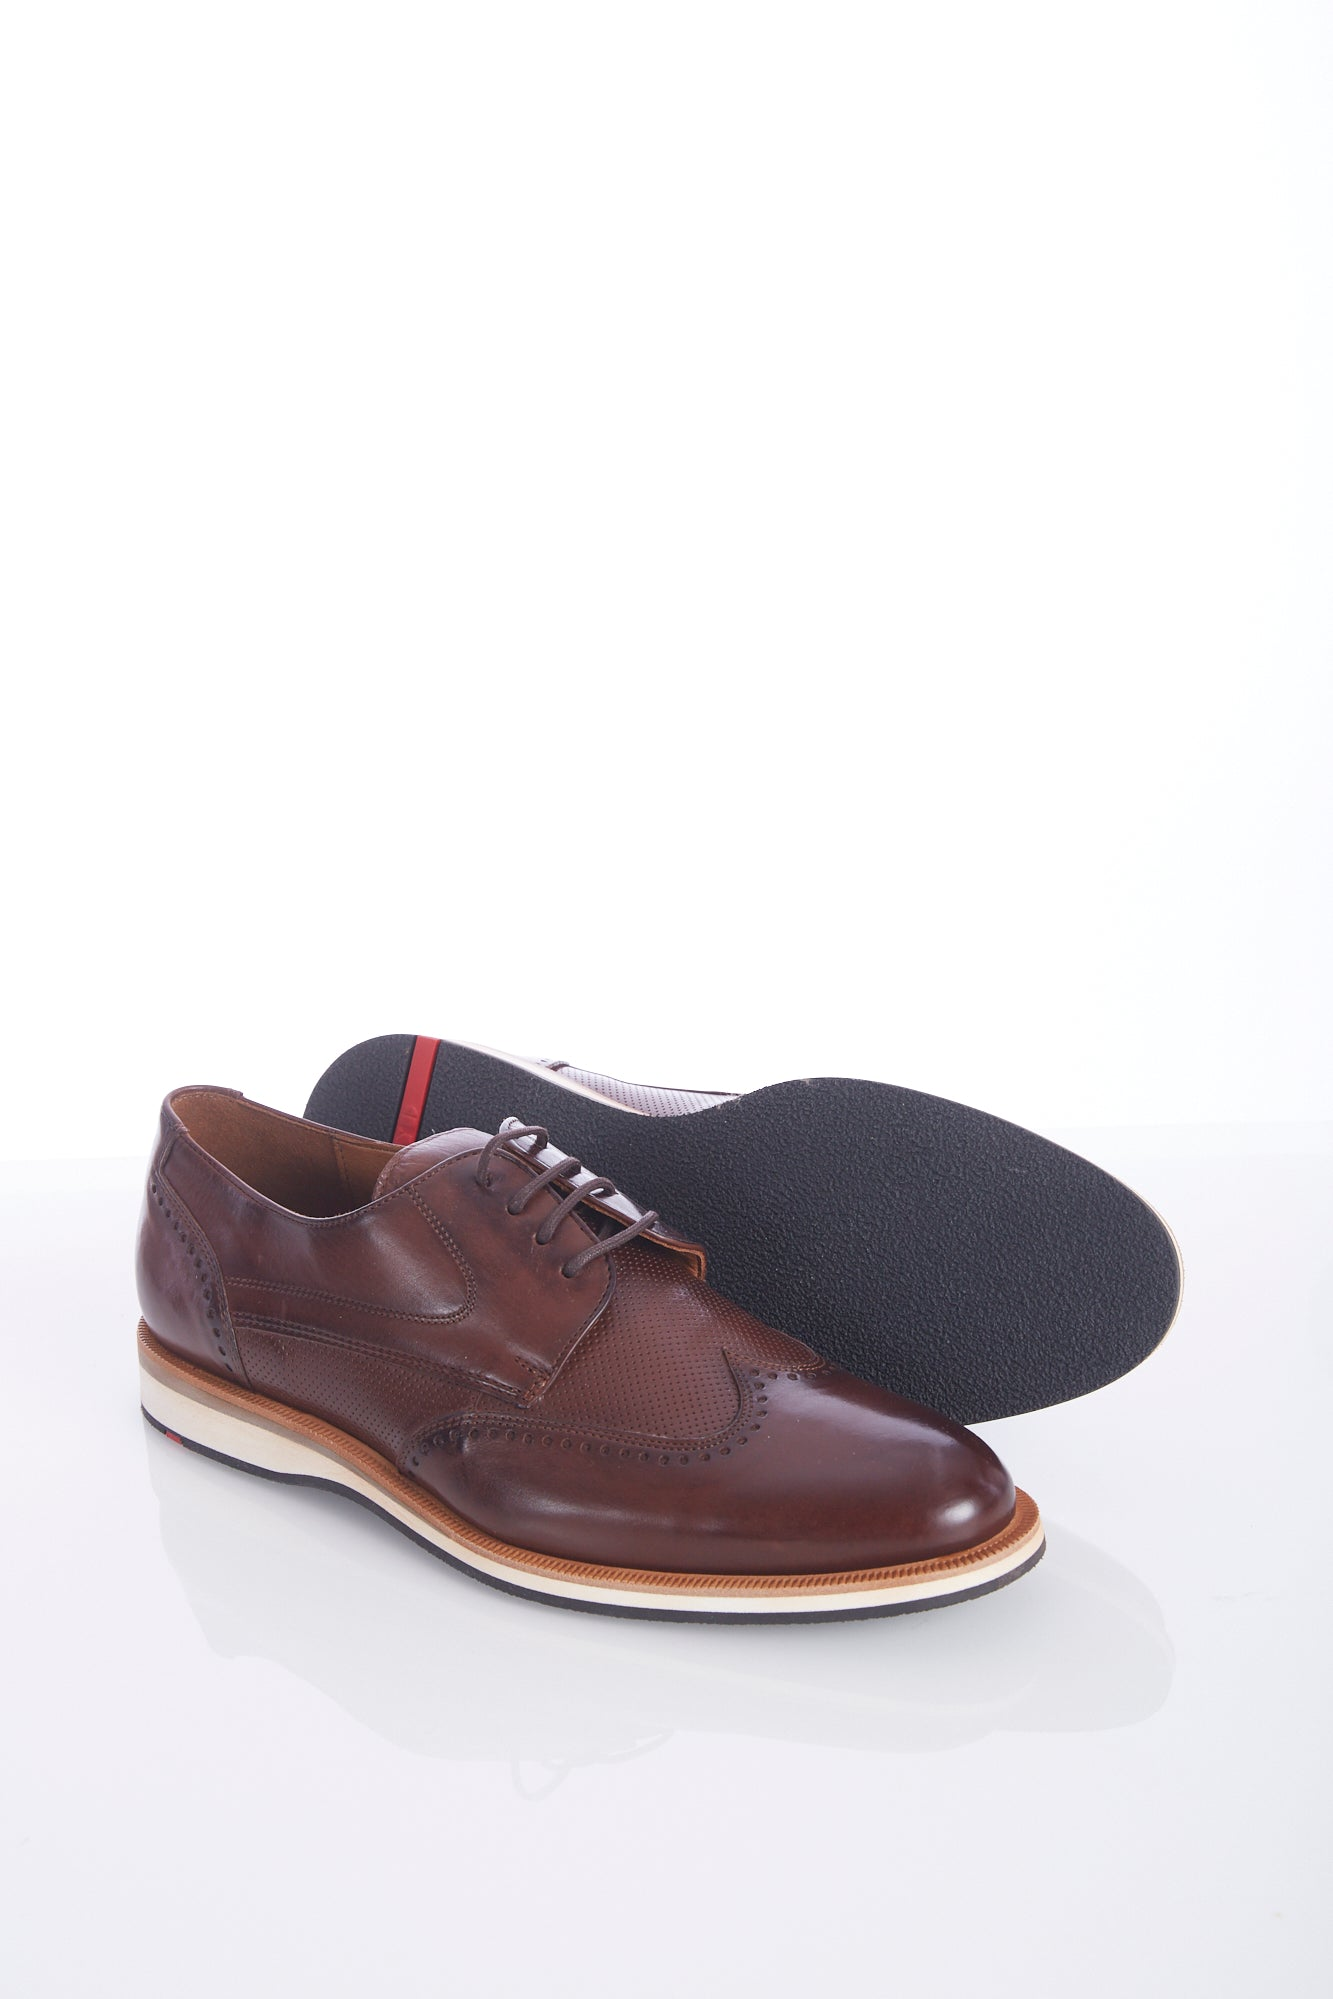 Lloyd 'Odil' Chestnut Brown Wingtip Shoes Side